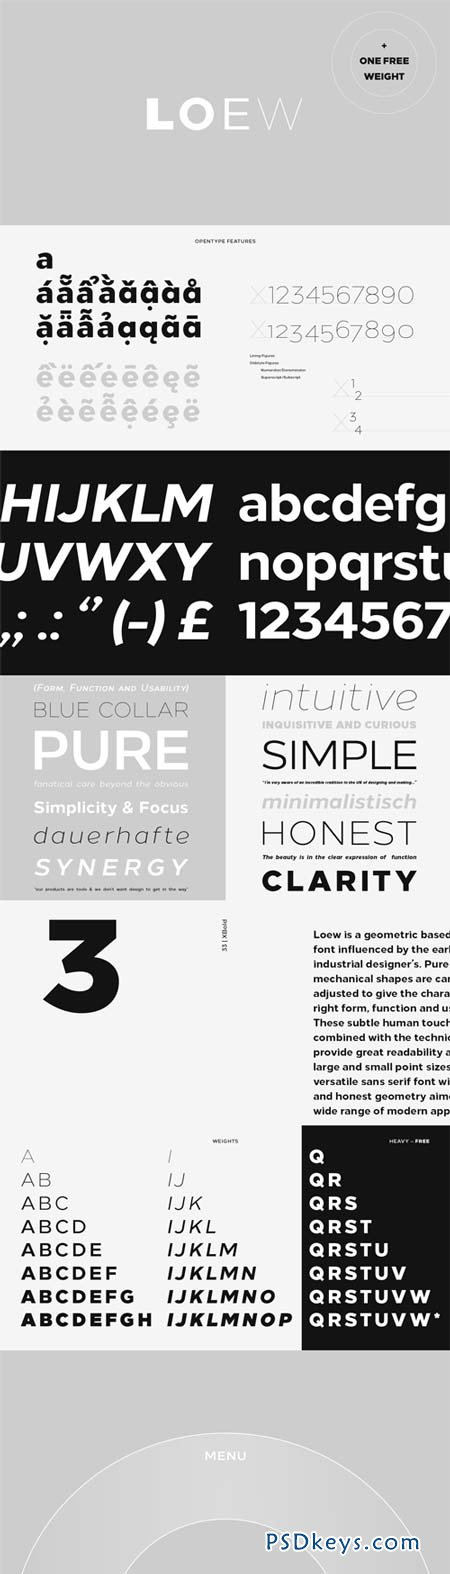 Loew Font Family - 16 Fonts for $265